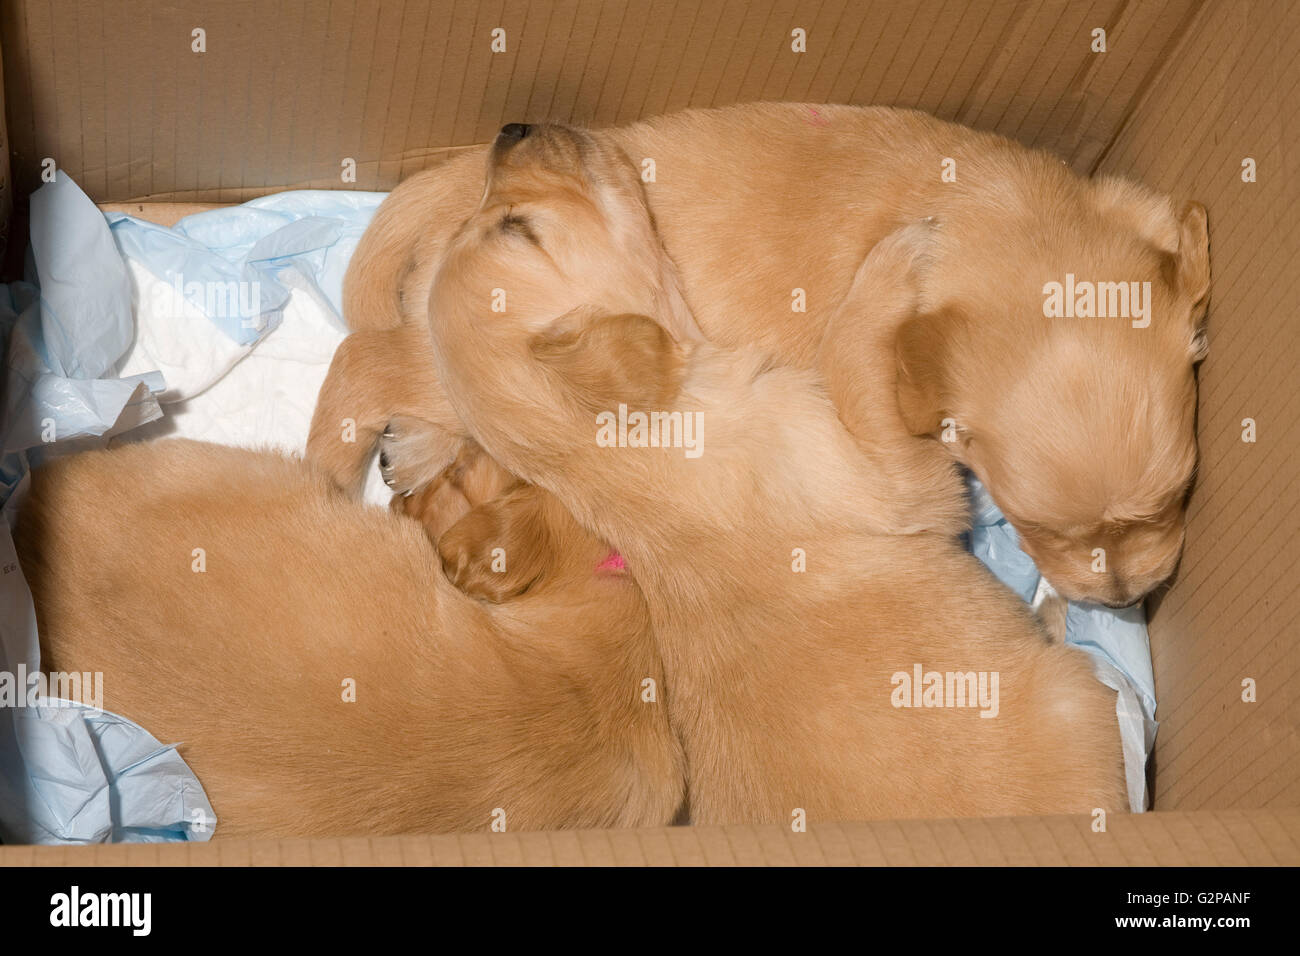 Golden retriever puppies sleeping temporarily in cardboard box for convenience - Stock Image